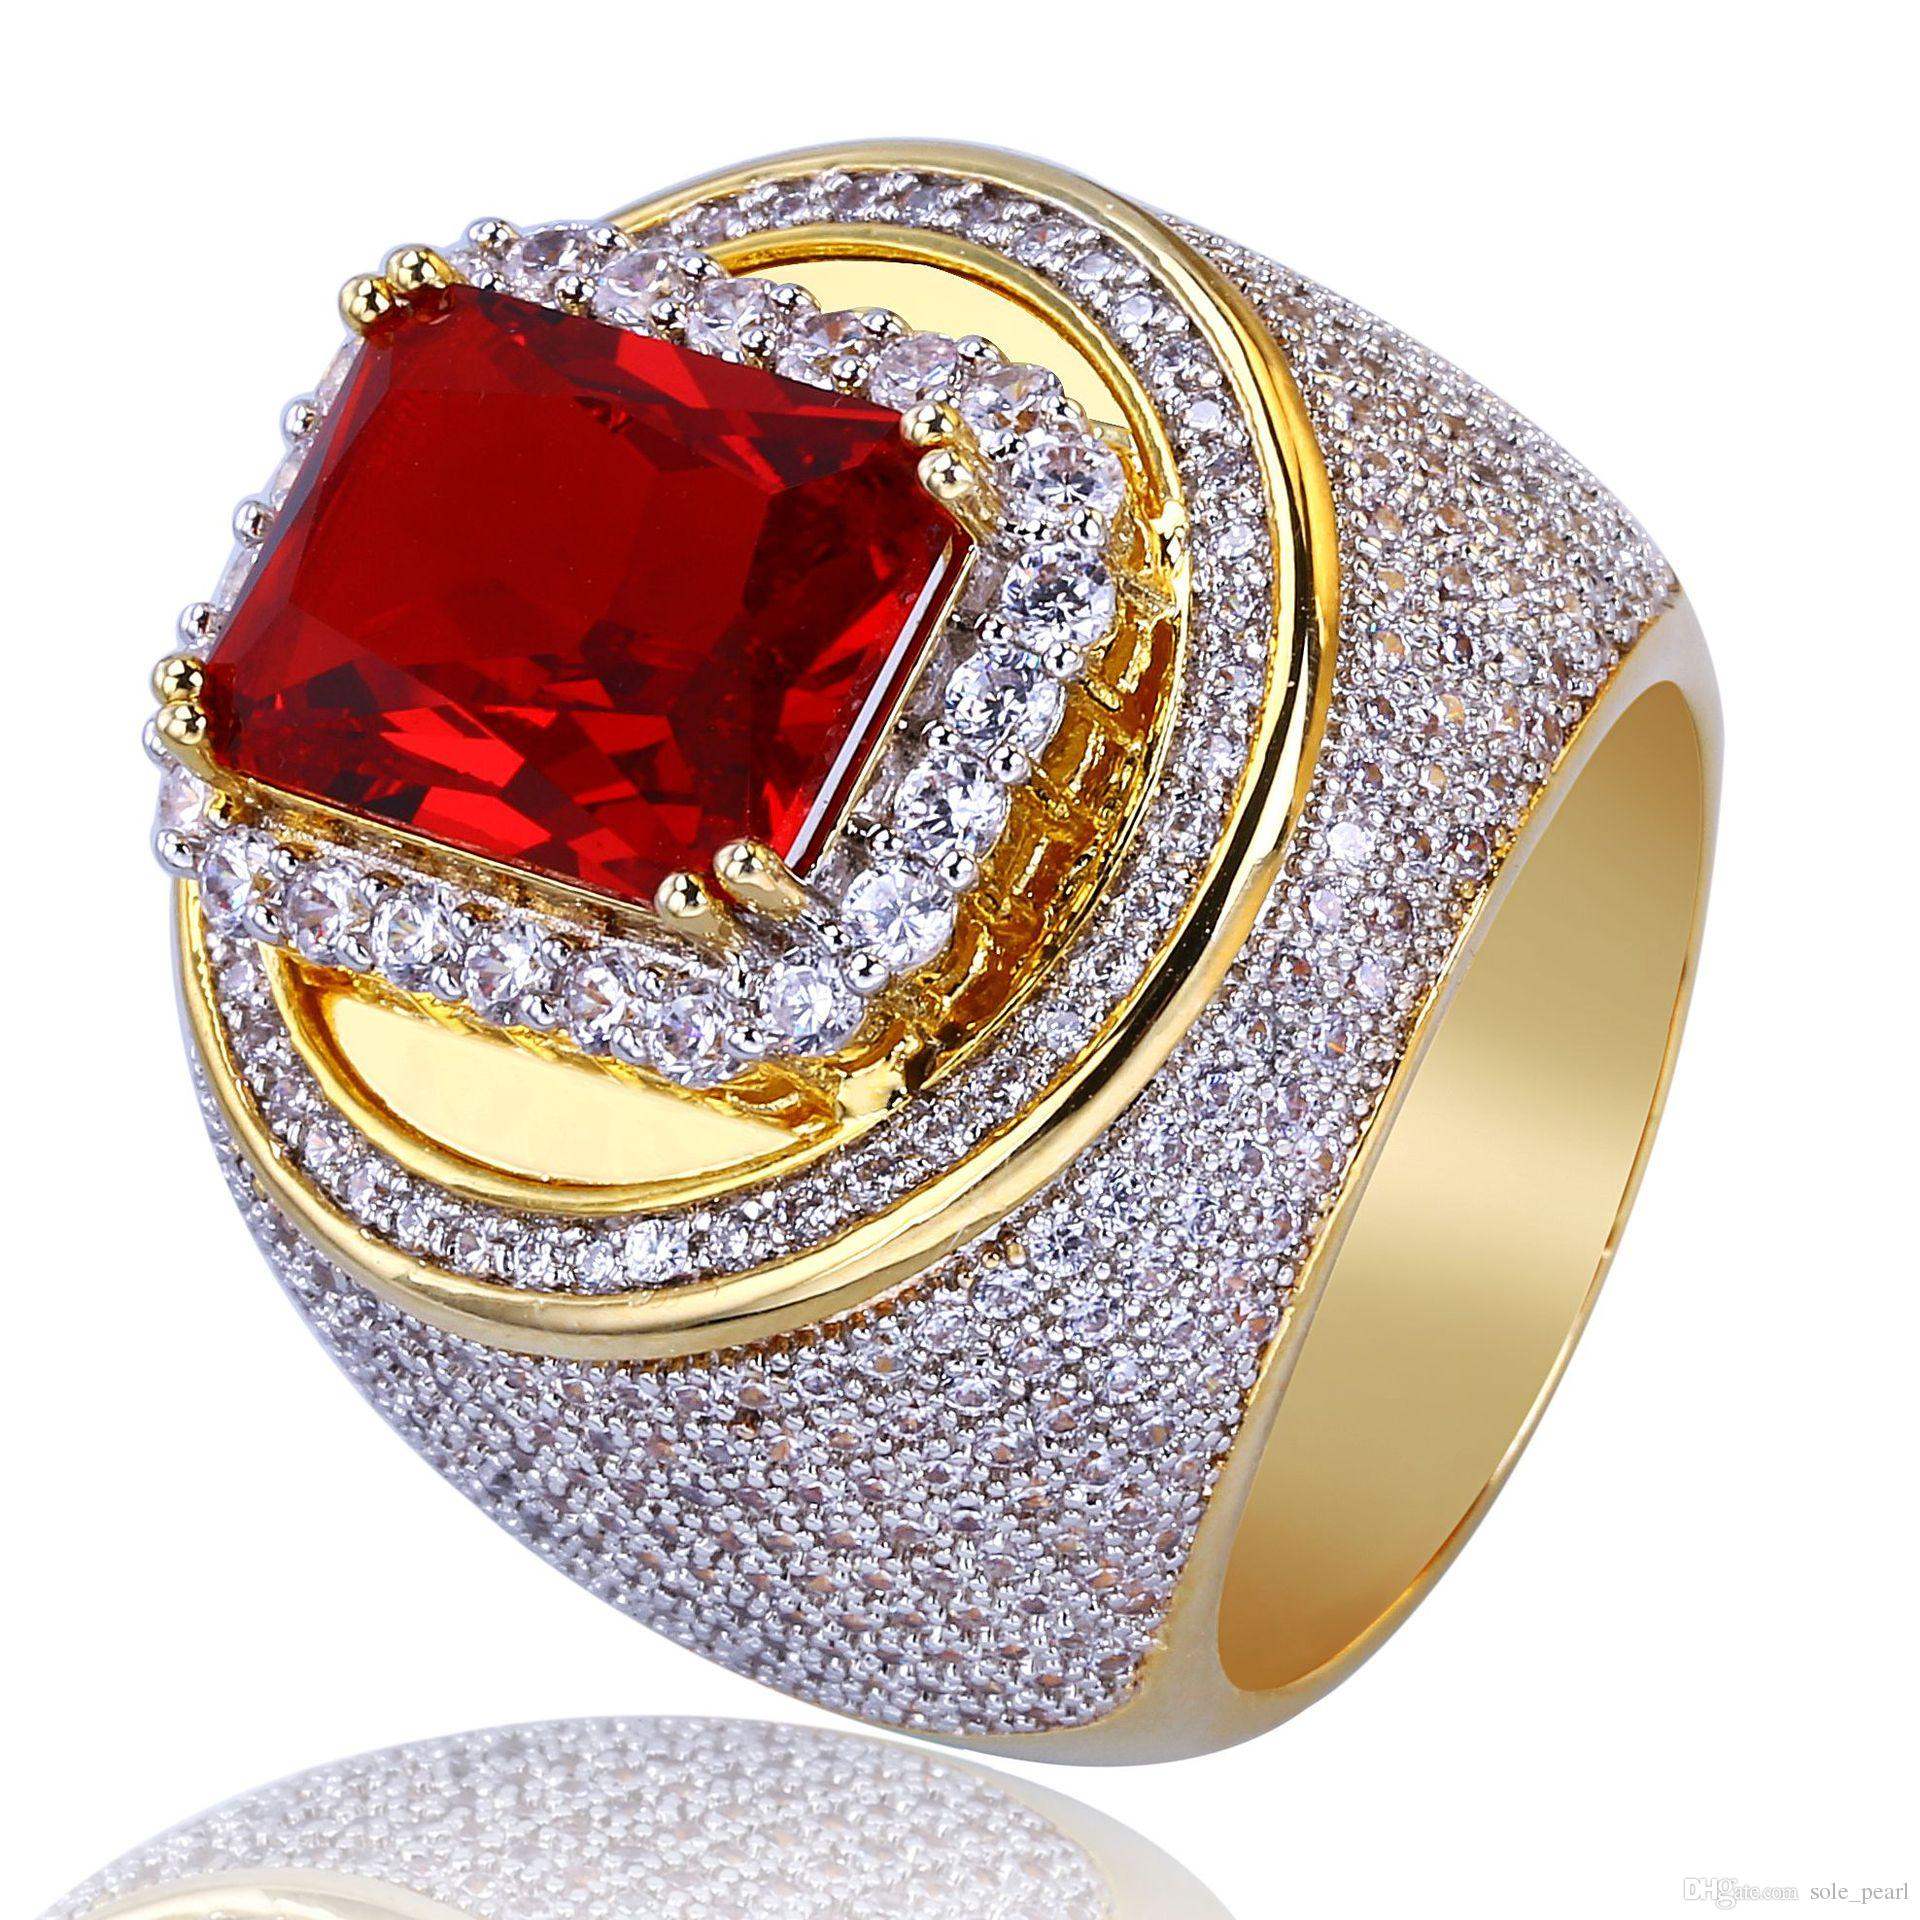 cad6d8e4d75e95 New Mens Ring Vintage Hip Hop Jewelry Ruby Zircon Iced Out Copper Rings  Luxury Real Gold Plated For Lover Fashion Jewelry Wholesale 2 Carat Diamond  Ring ...